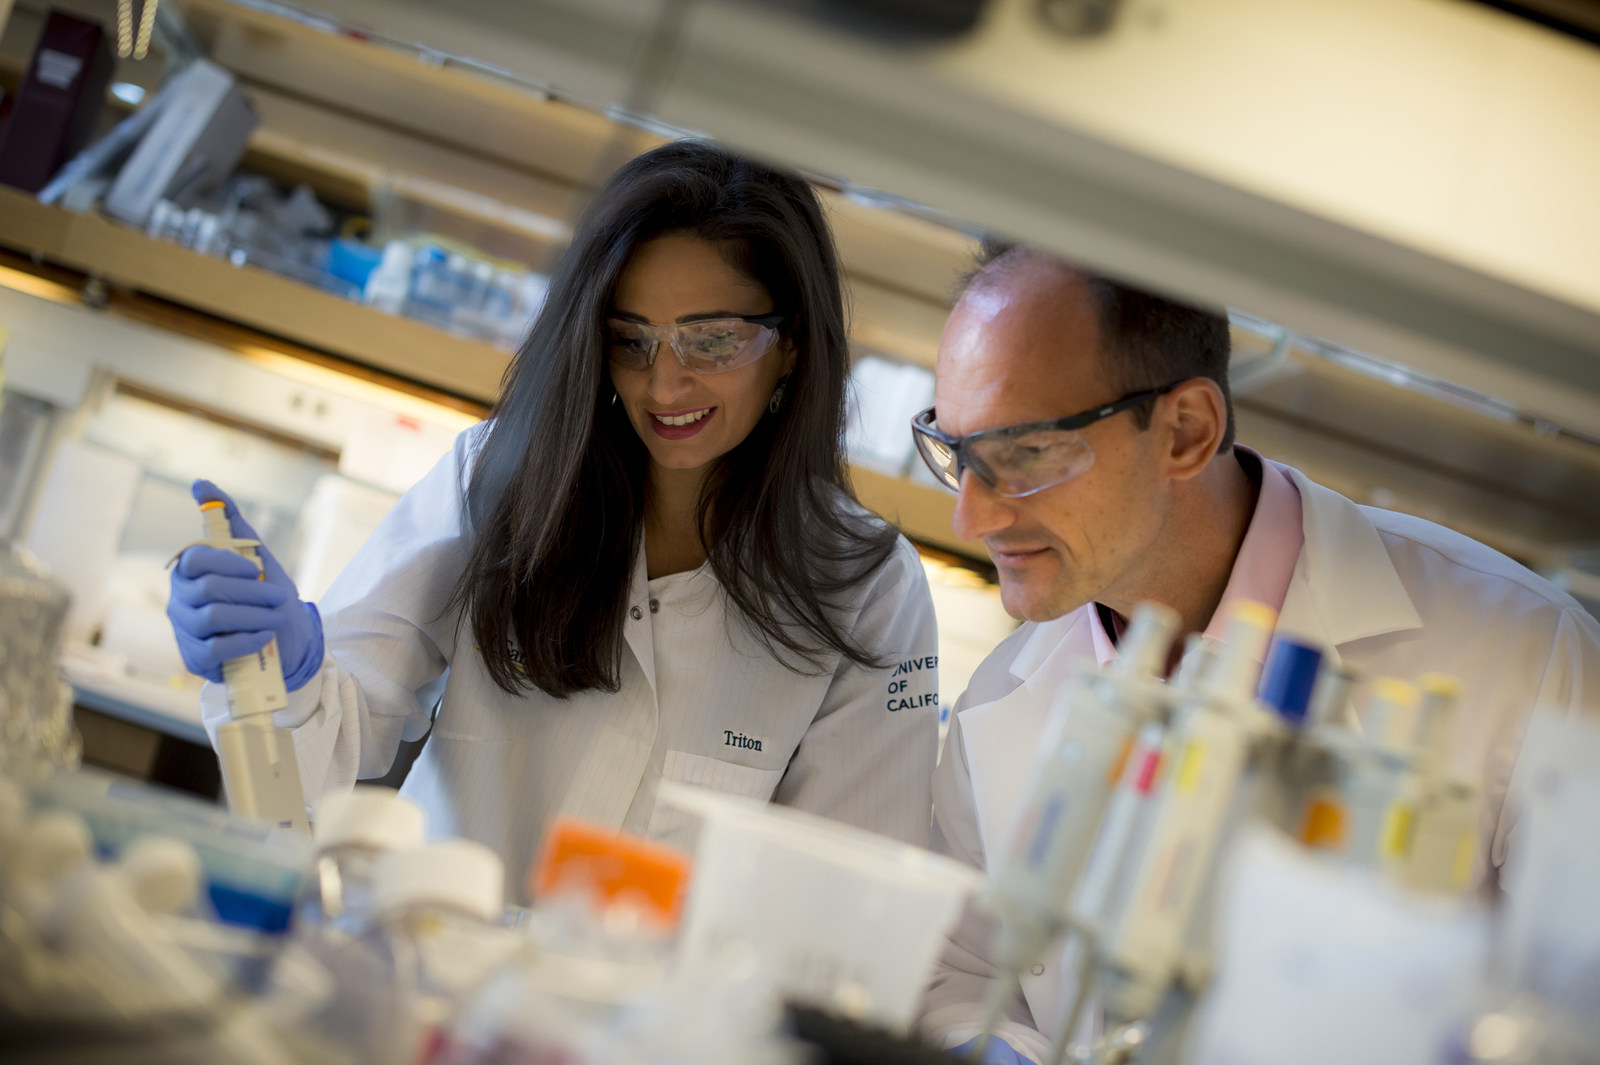 The San Diego-based center will serve as an international hub for human milk and lactation research. Photo: Erik Jepsen/UC San Diego Publications.